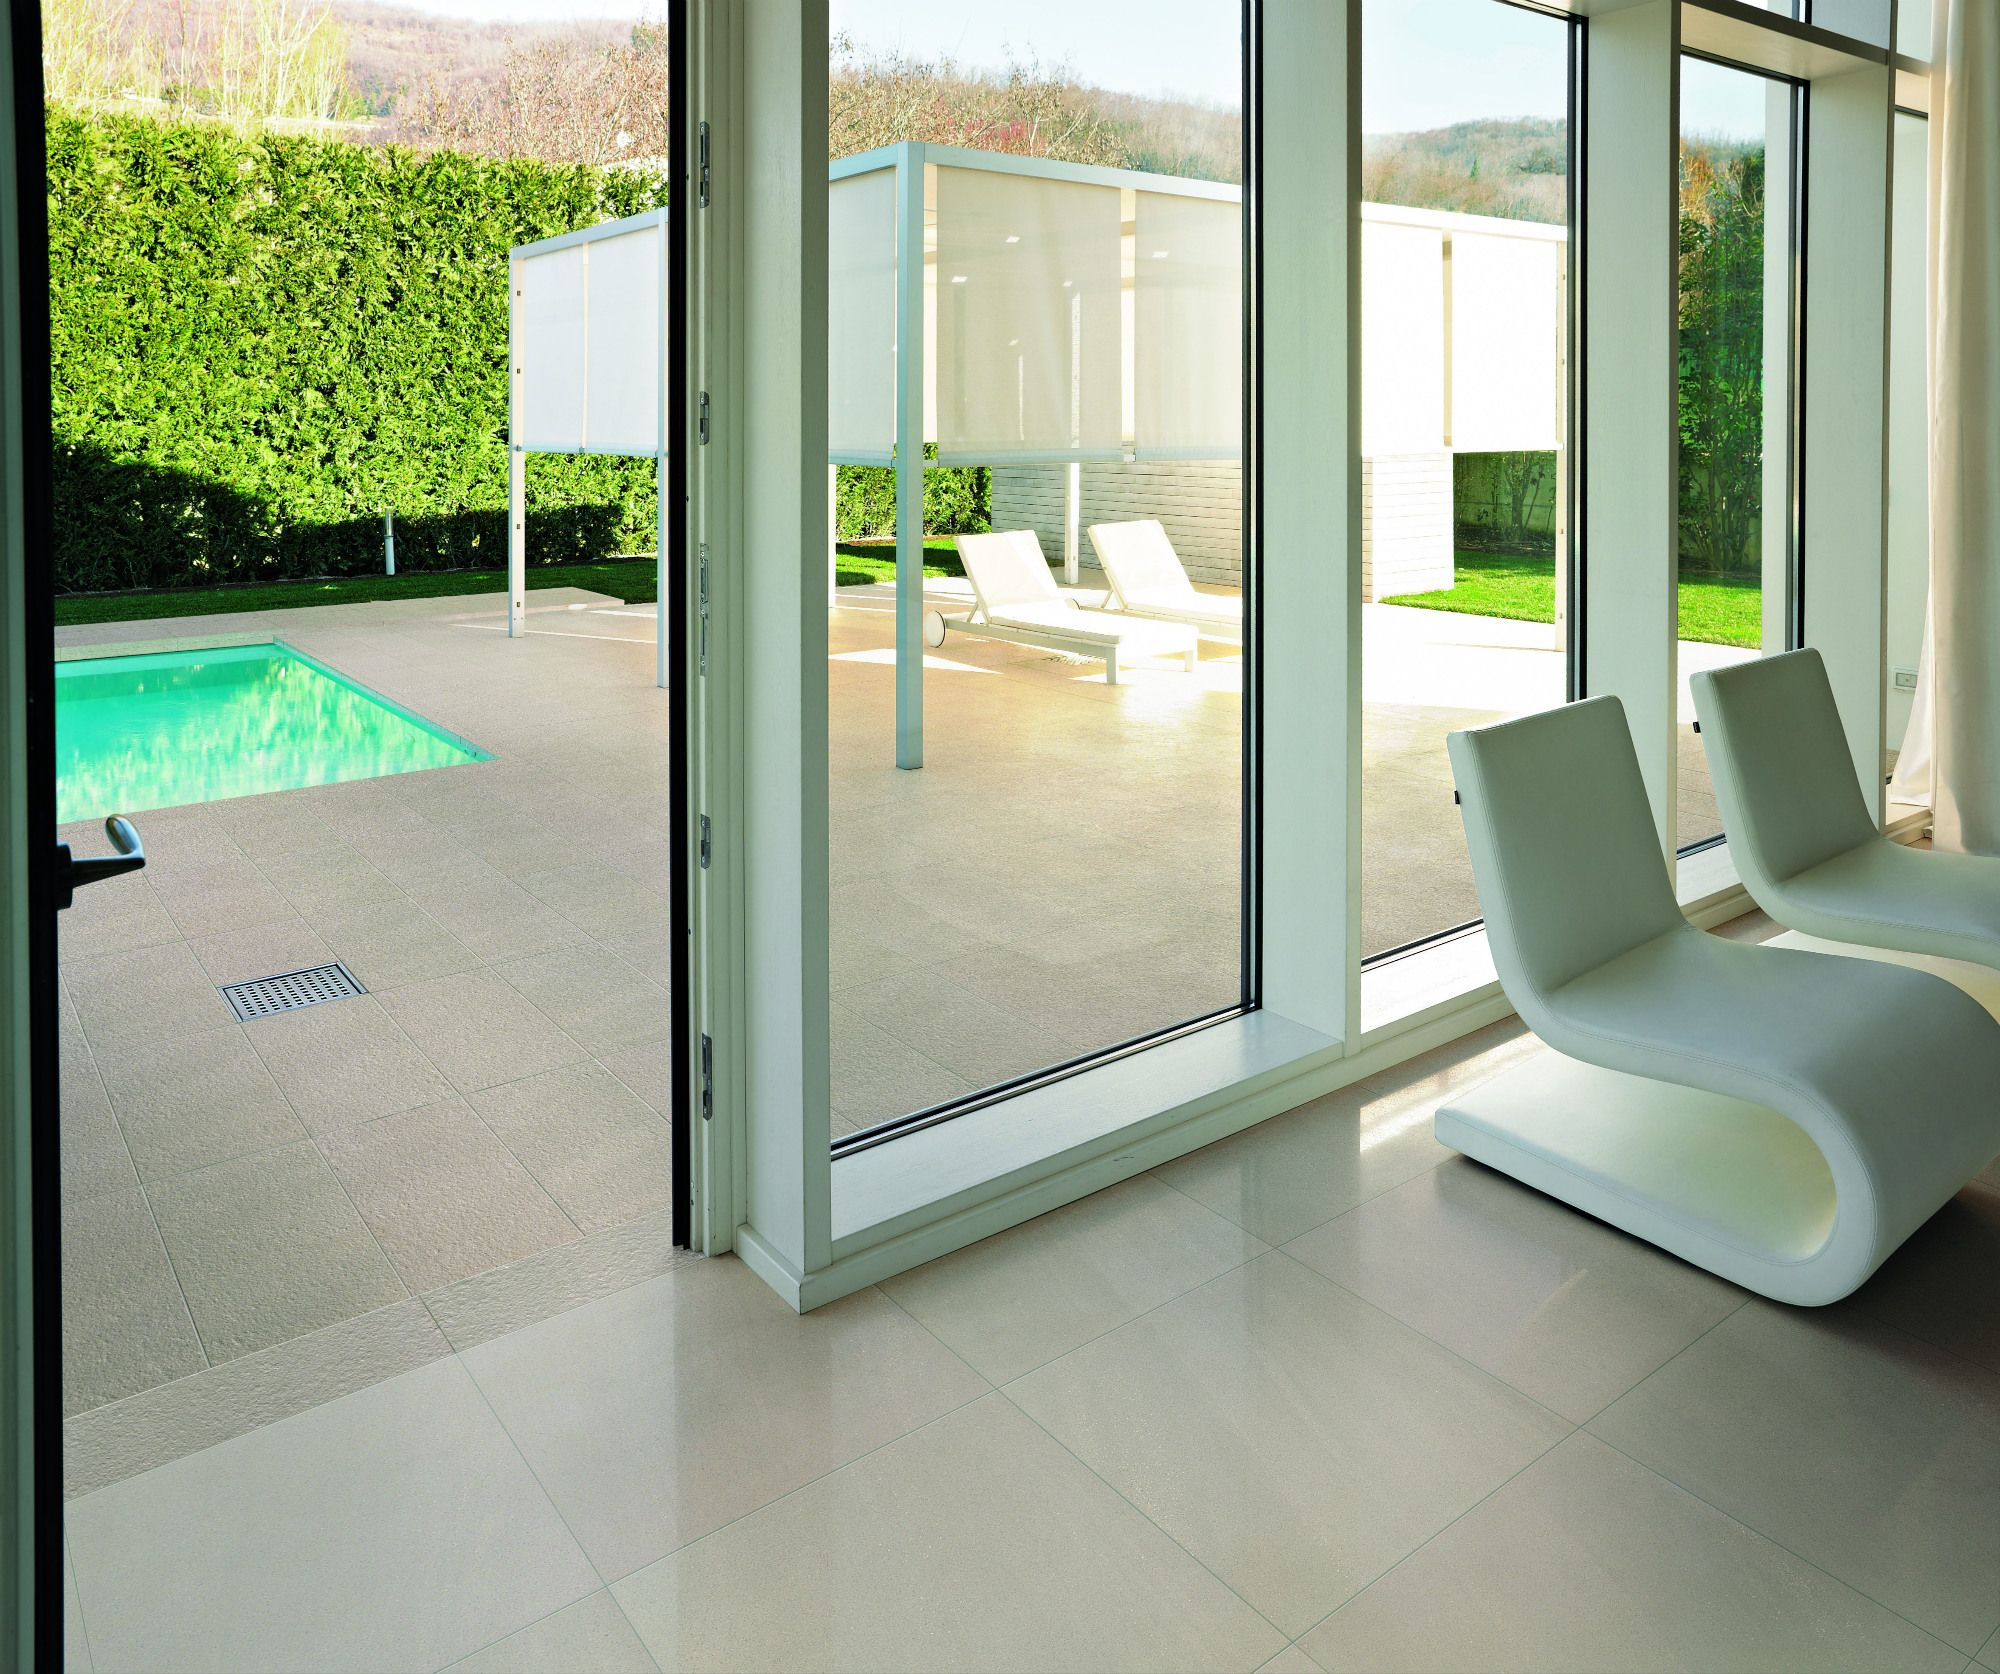 floor tiles for indoor and outdoor use. outside floor tiles: for-ever rock strutturato 30 x 60 cm* / inside lappato cm a wonderful tile to use and out. tiles for indoor outdoor